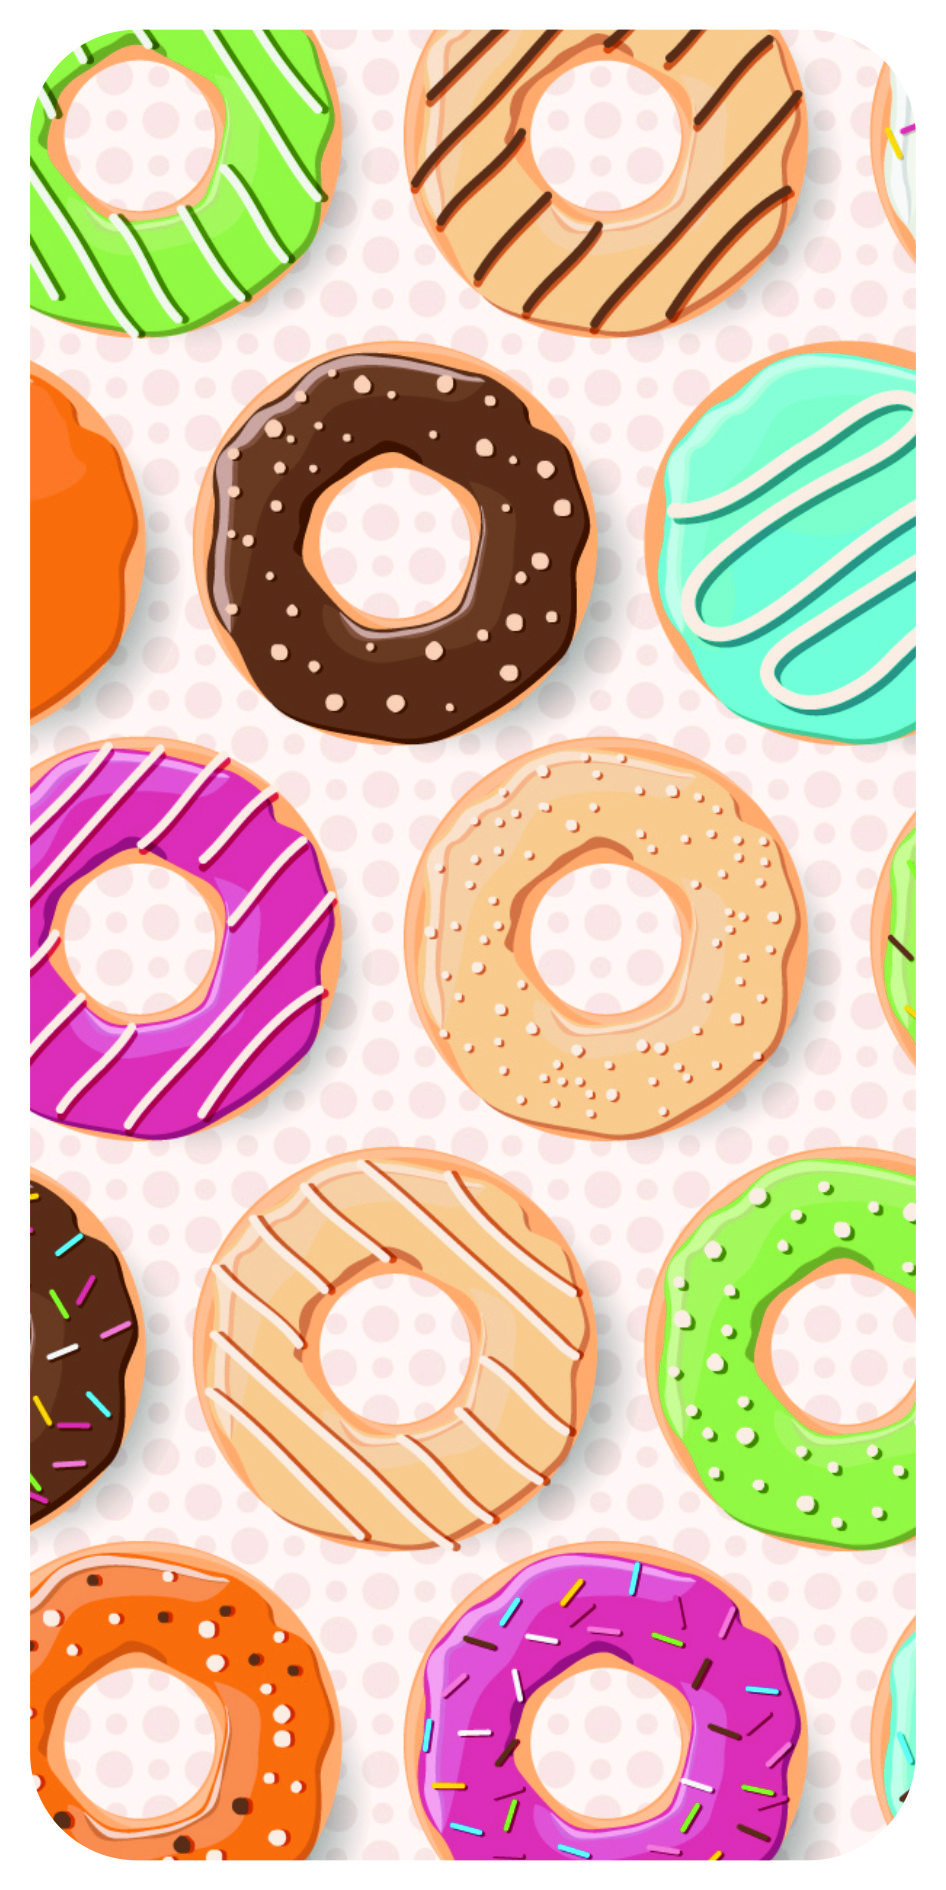 Donuts 008